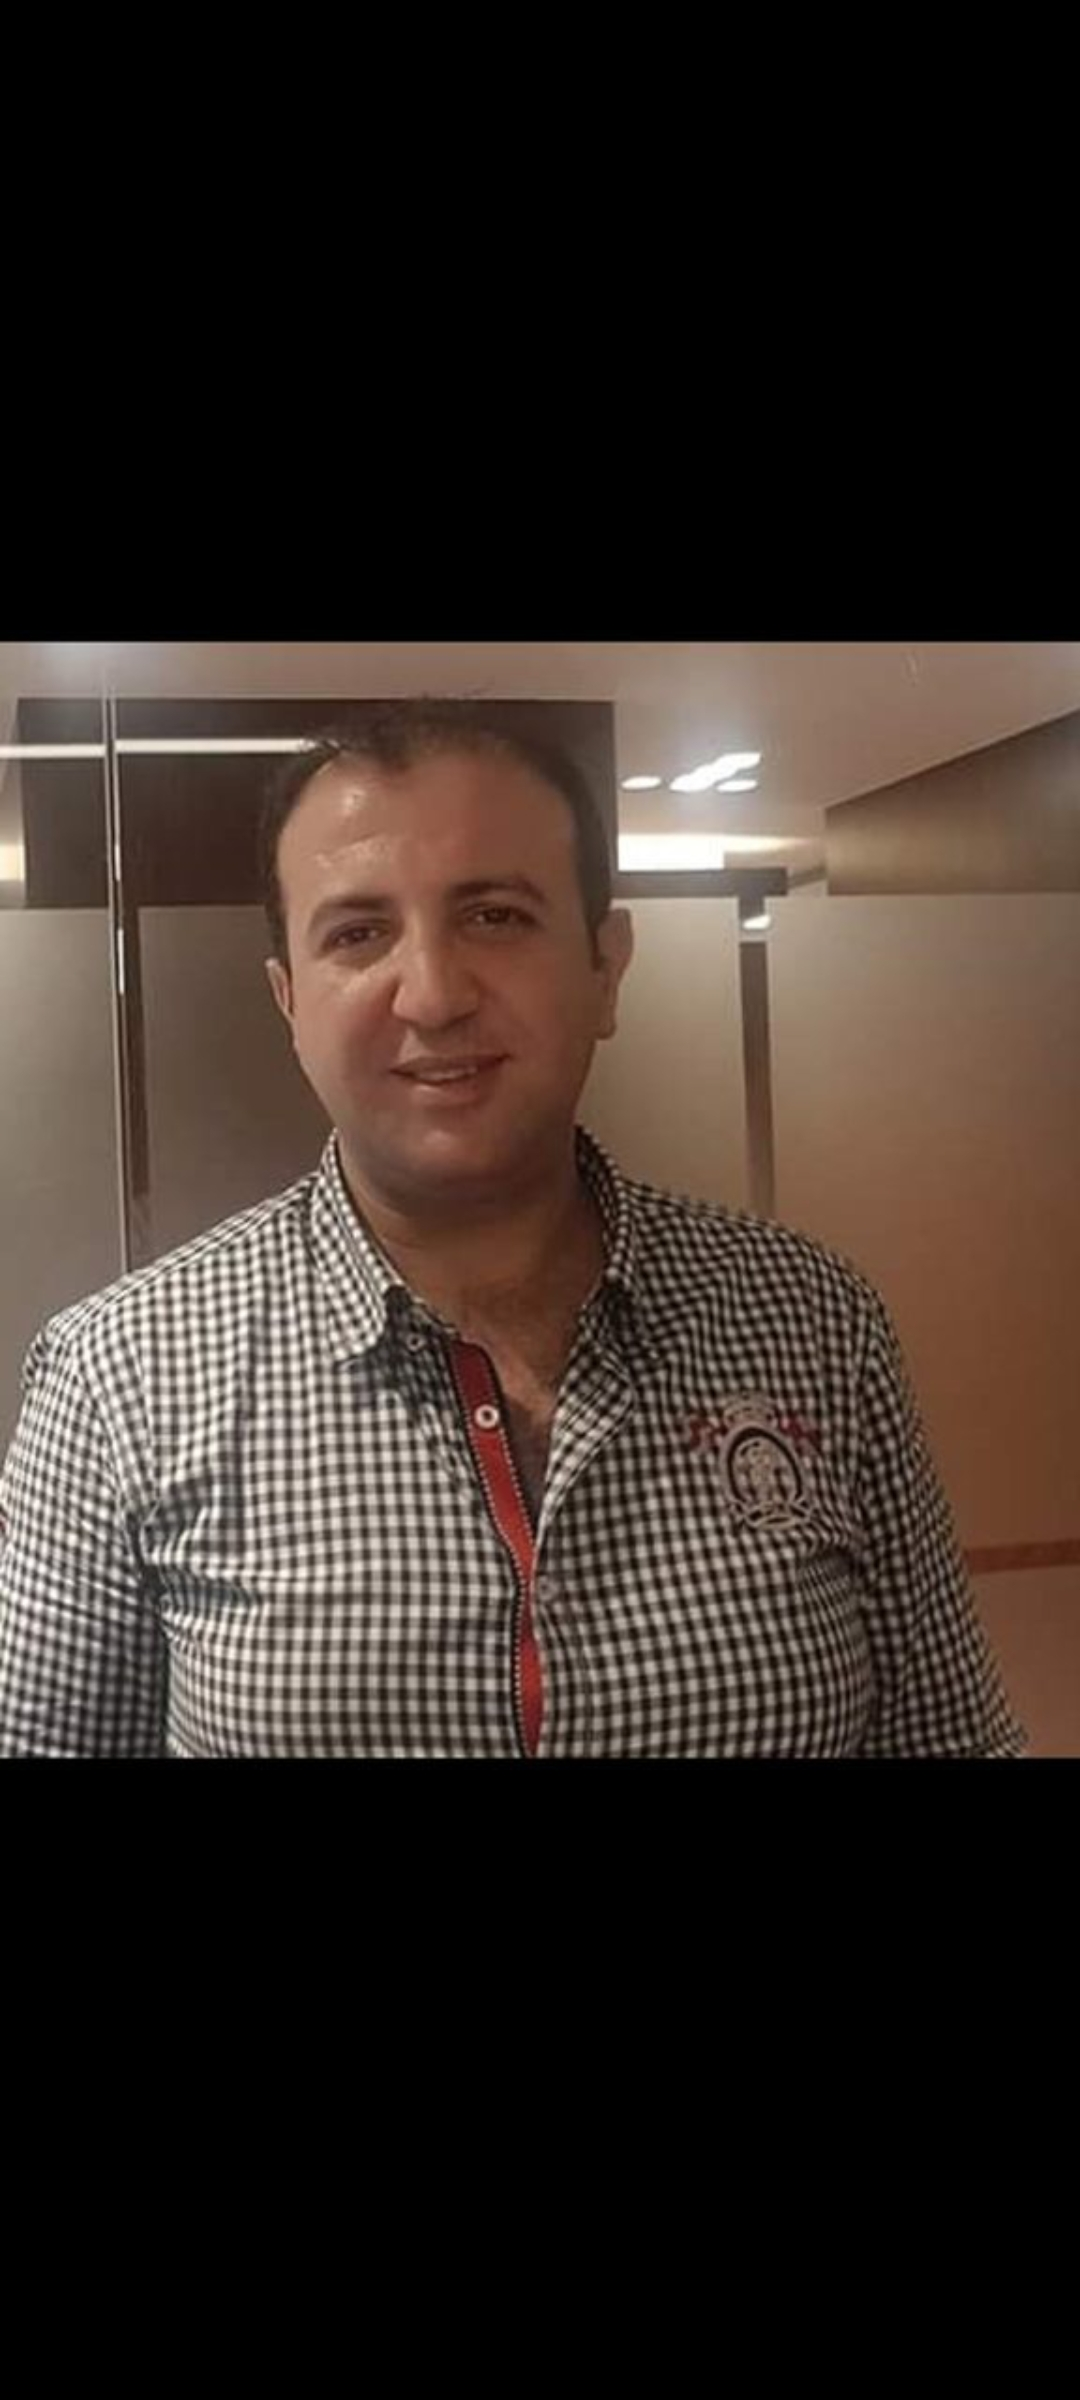 hamada_elgharabawy Profile Picture